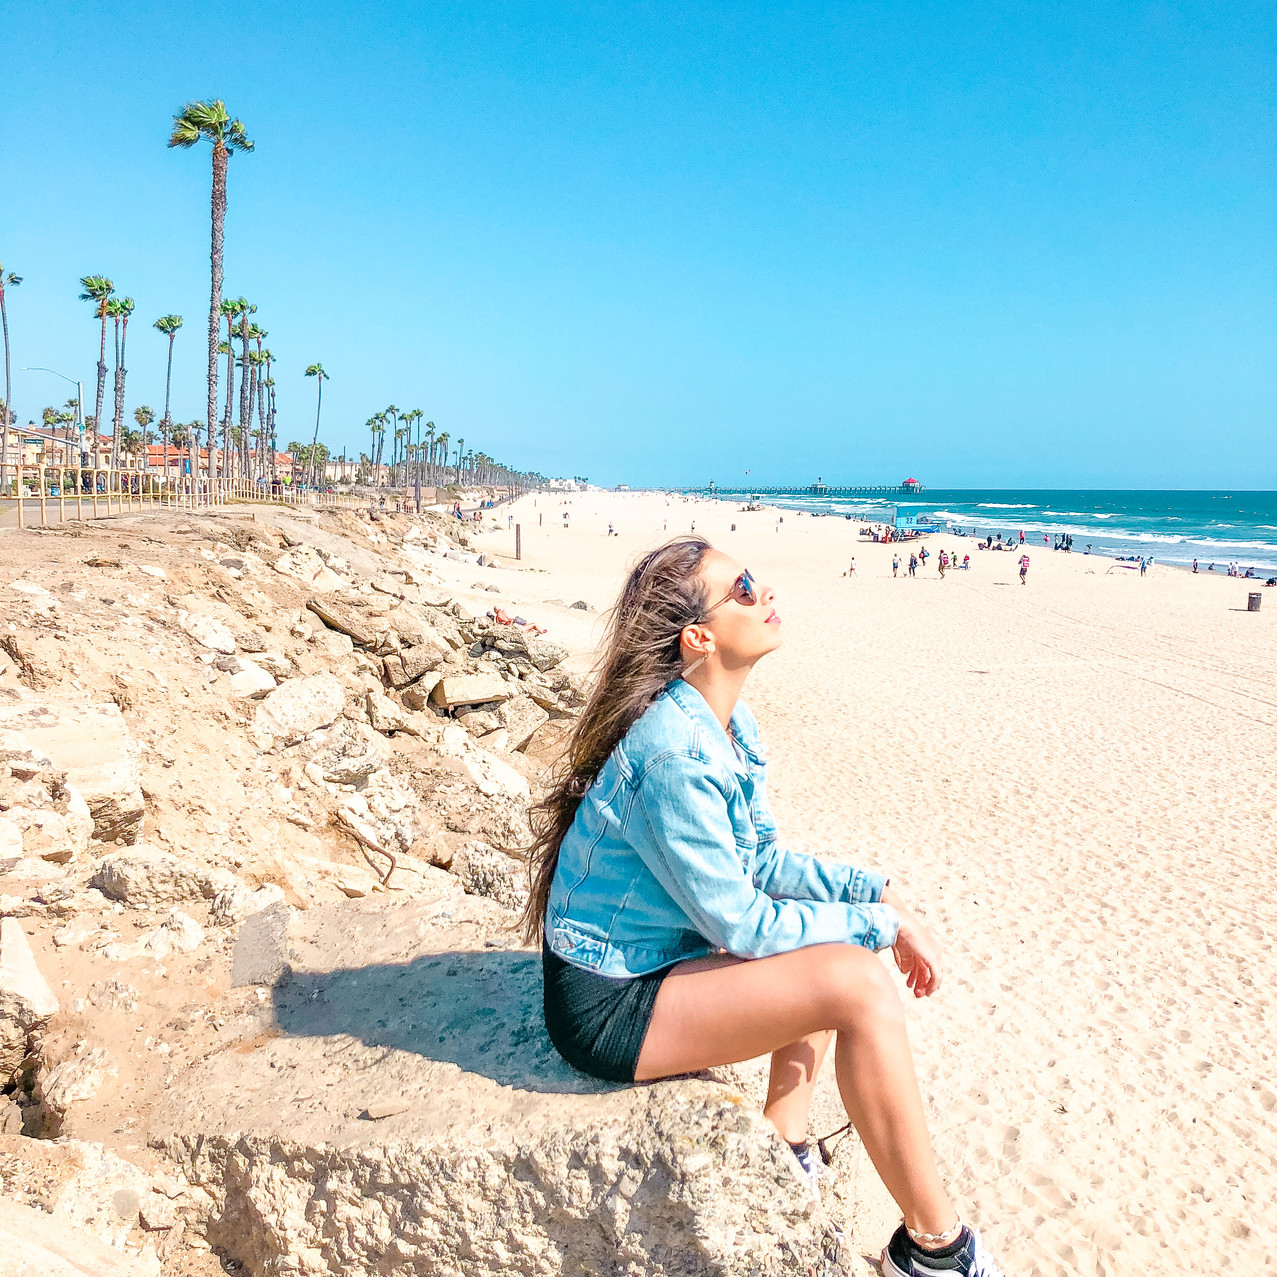 girl sitting on beach cliffs on a clear day